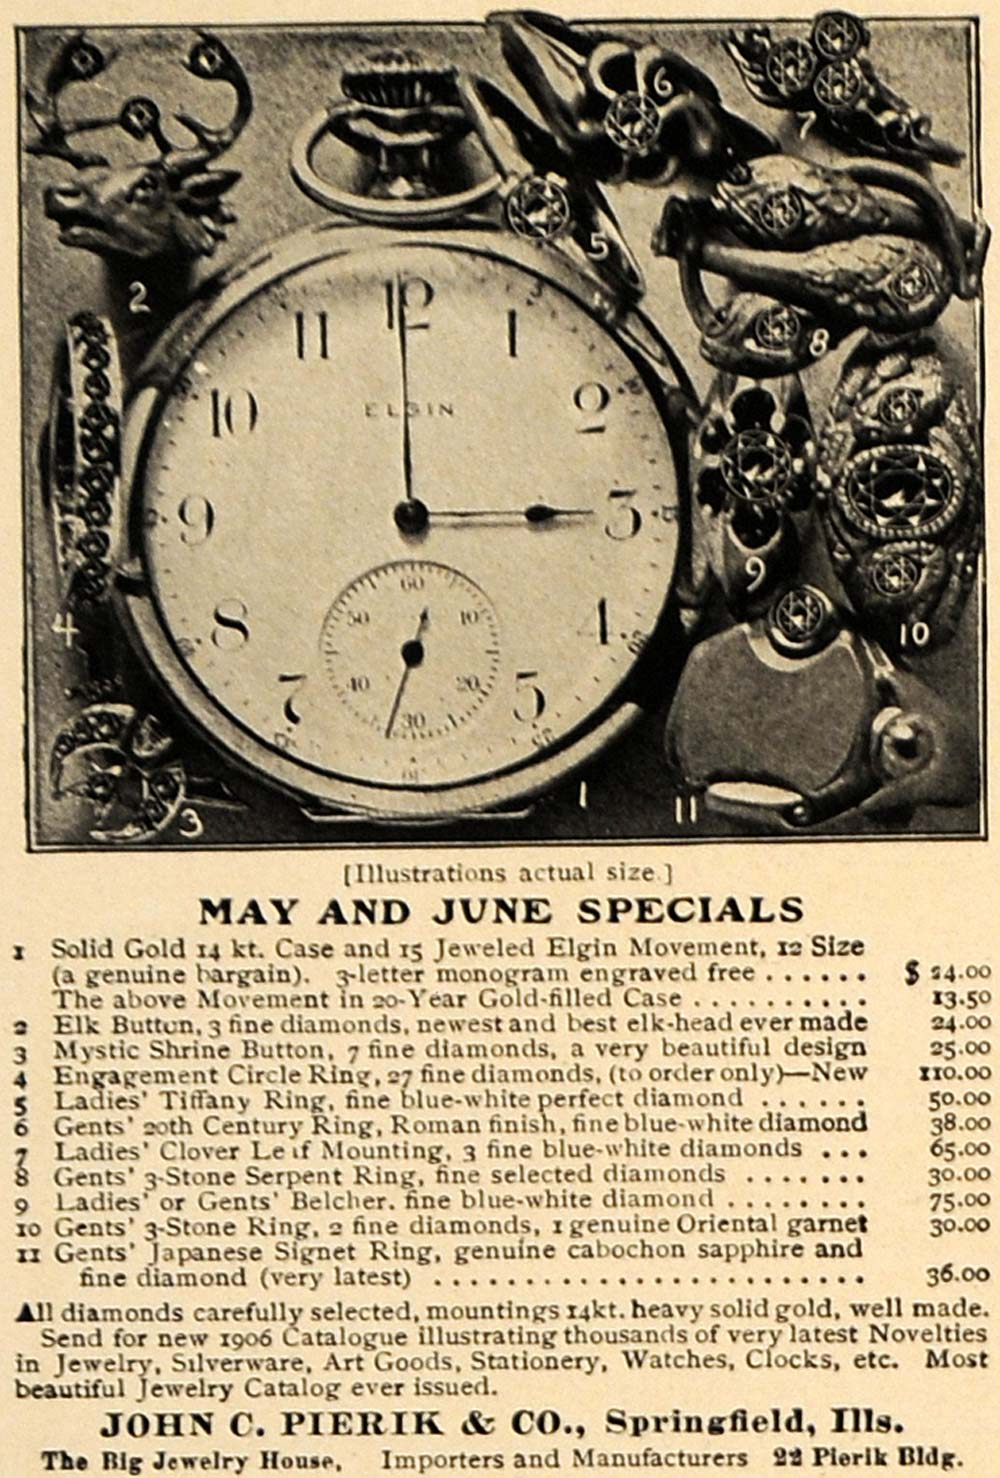 1906 Ad Pocket Watch Jewelry Ring John C Pierik Company - ORIGINAL CL9